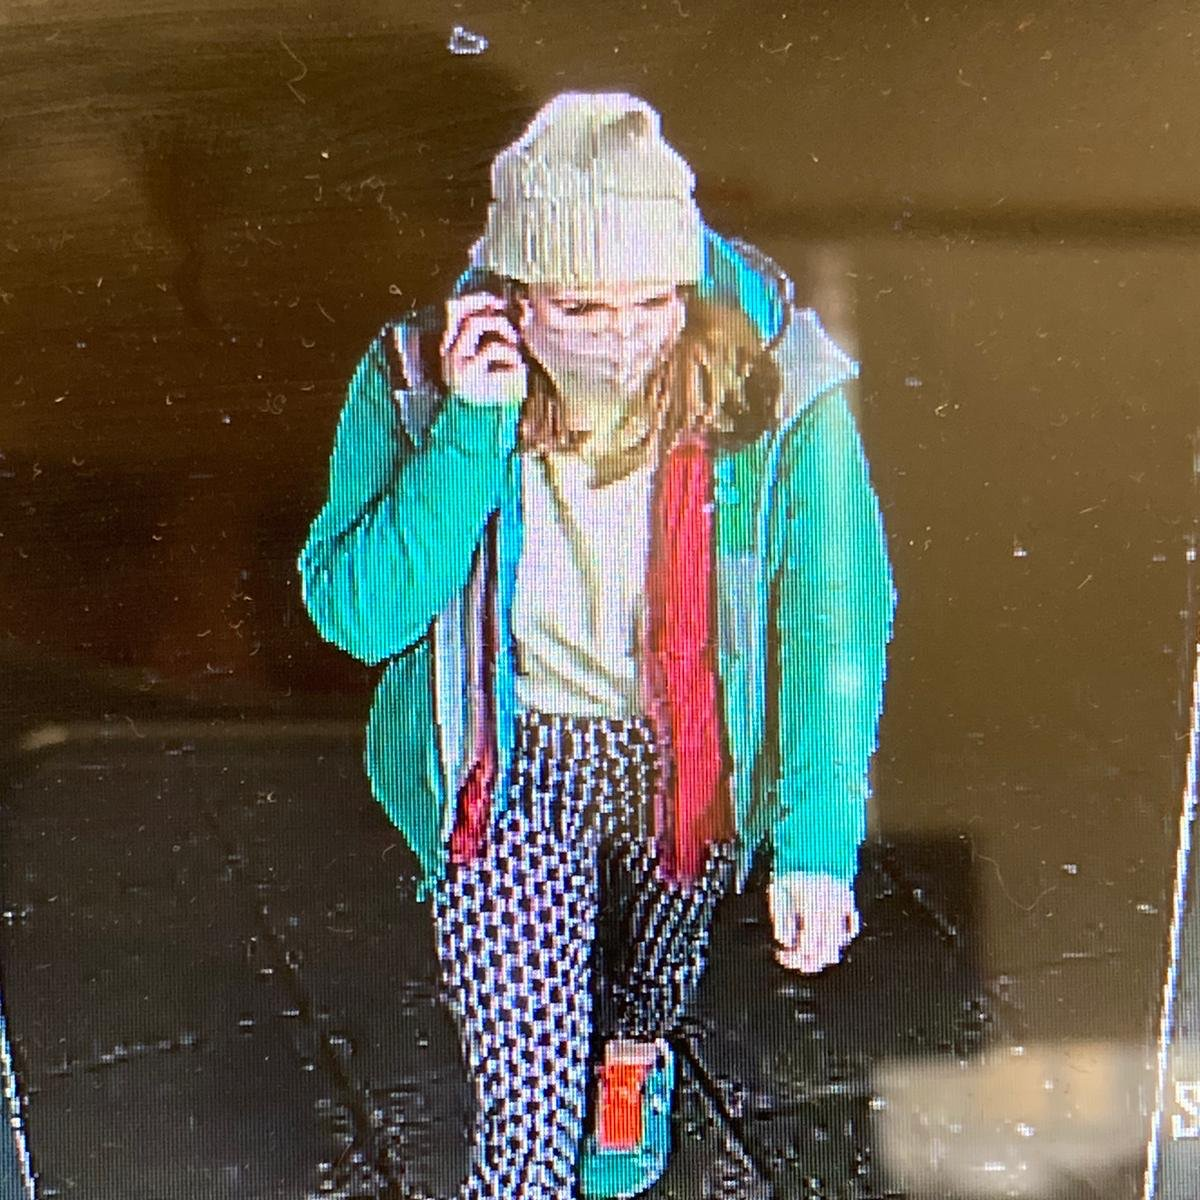 #Missing | Sarah Everard was last seen in Clapham on Wednesday evening.  🔊 DCI Kenward is appealing for information and asks locals to check dash cams and video doorbells from Wednesday night.  Please contact us if you saw Sarah.  📞 Call 101  #Clapham #Brixton  @LambethMPS